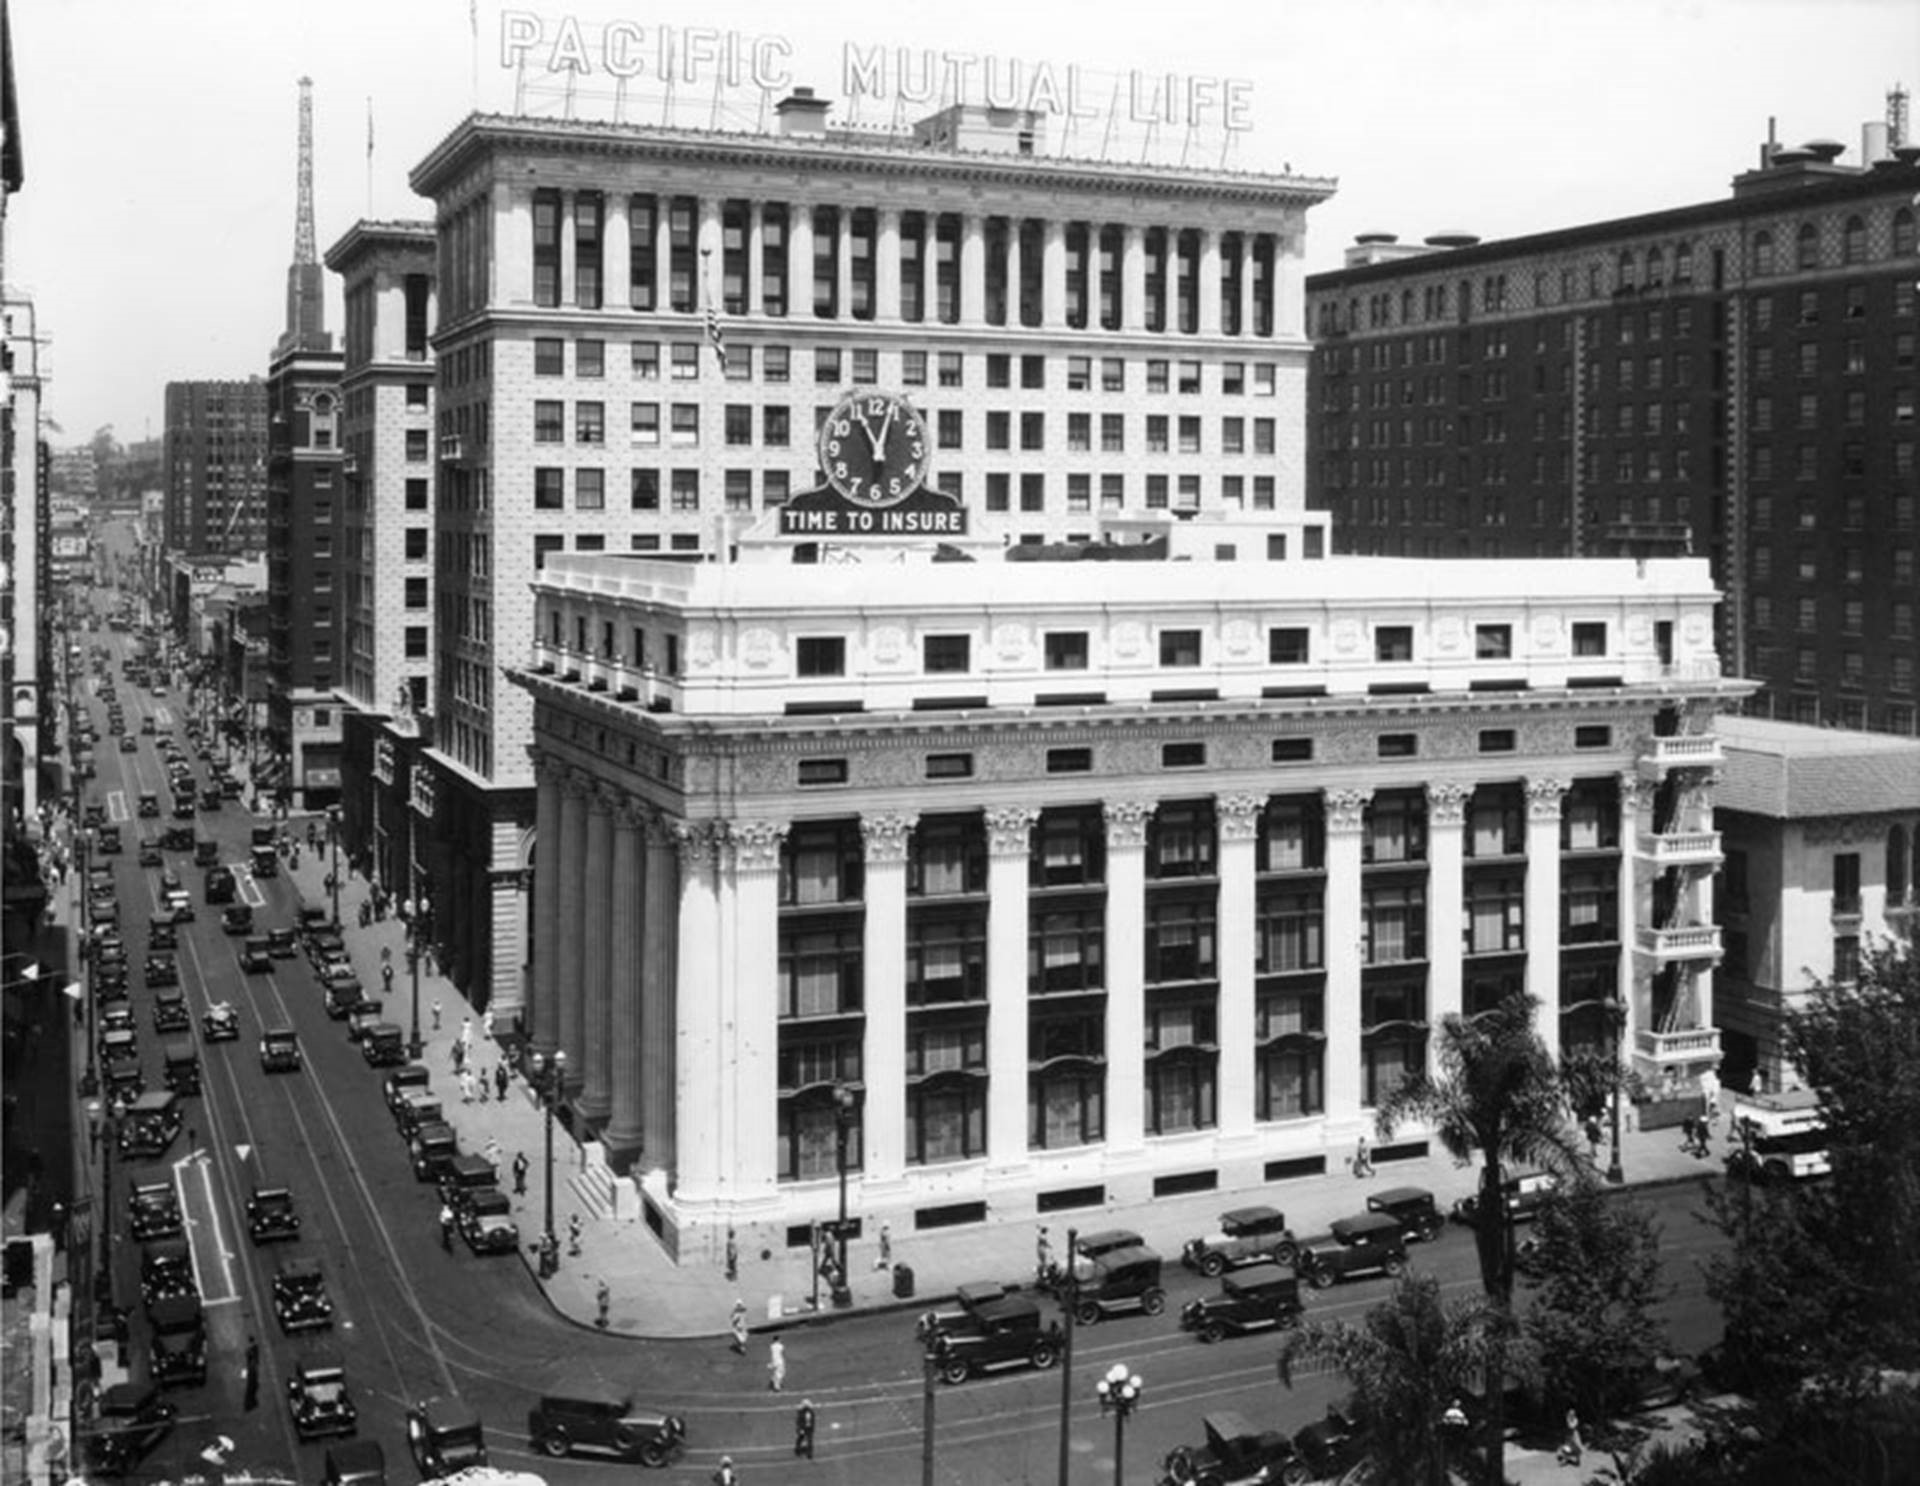 Howarth & Smith's offices are located in the historic PacMutual Building, originally known as the Pacific Mutual Building. Designed by architects John Parkinson and Edwin Bergstrom, the building first opened in 1908 and represents one of Los Angeles' finest examples of neoclassical architectural style.